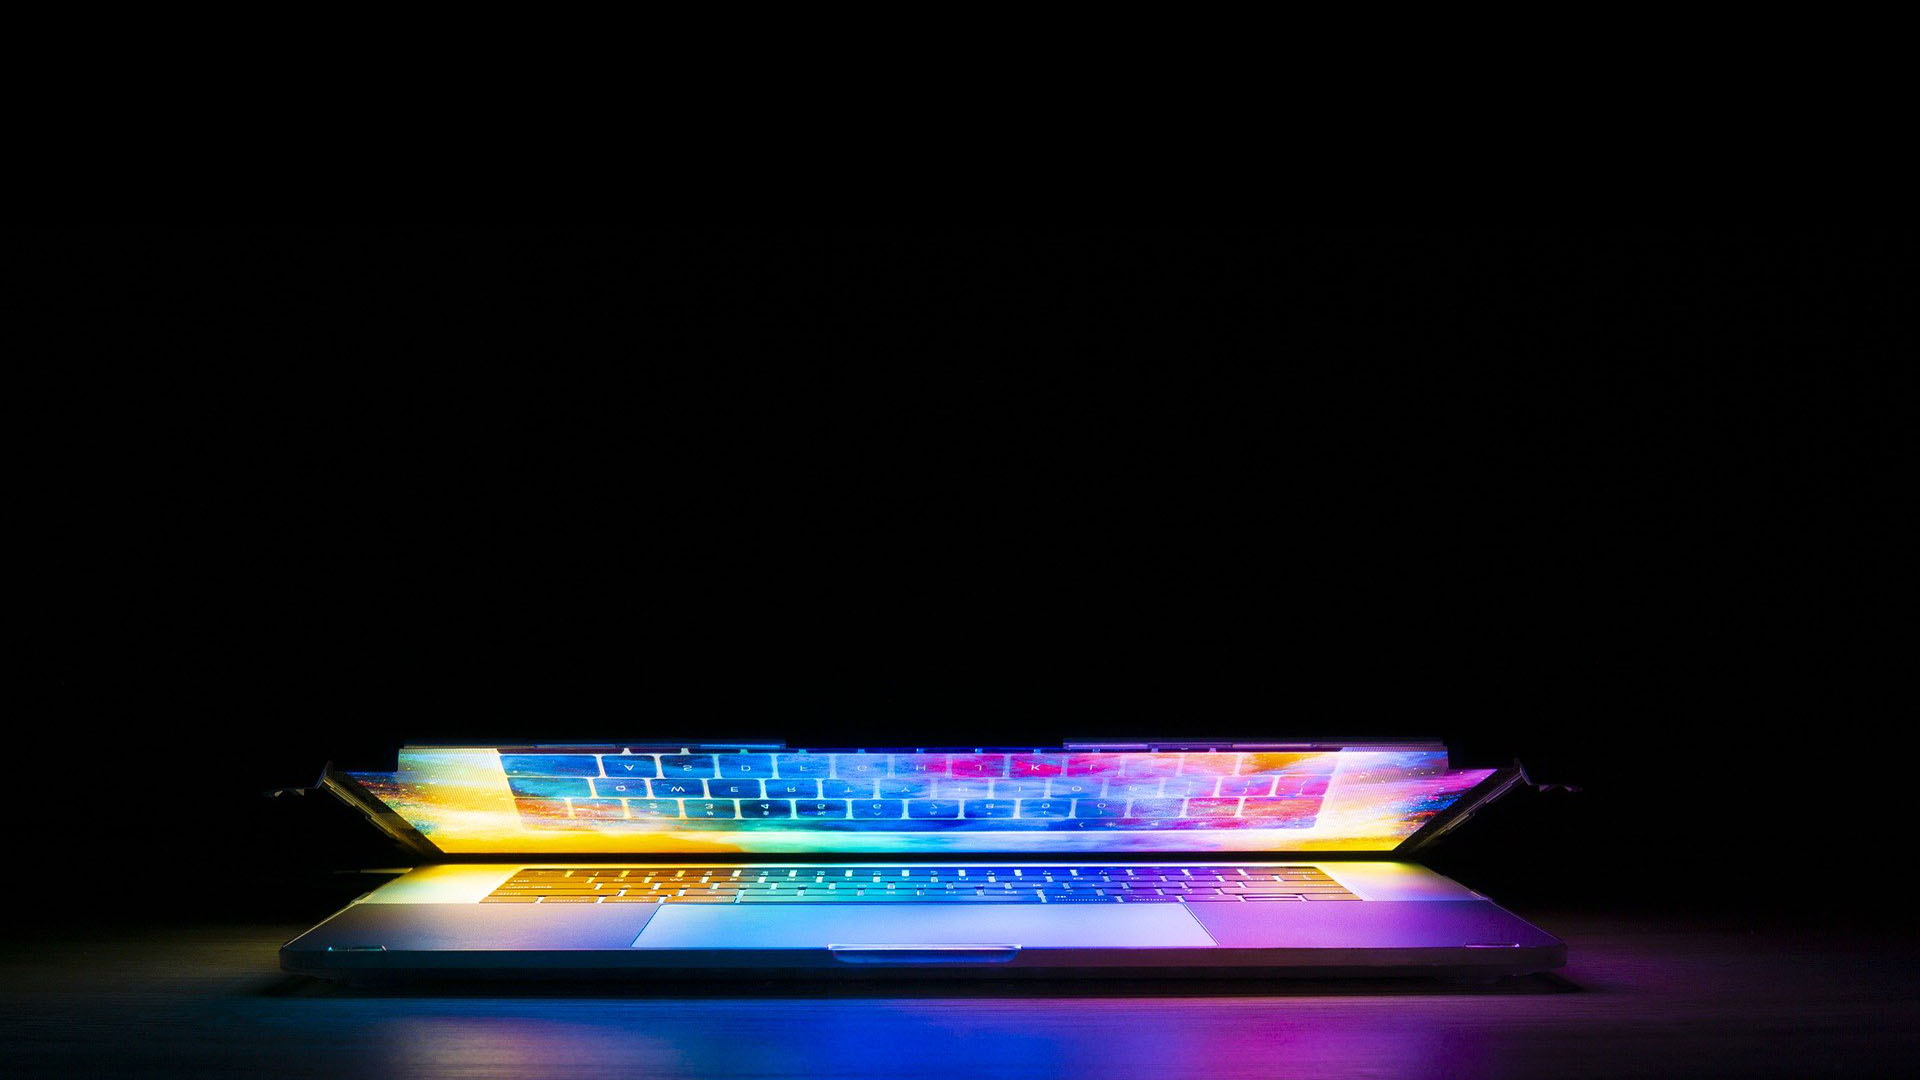 A laptop glowing with a variety of colours.